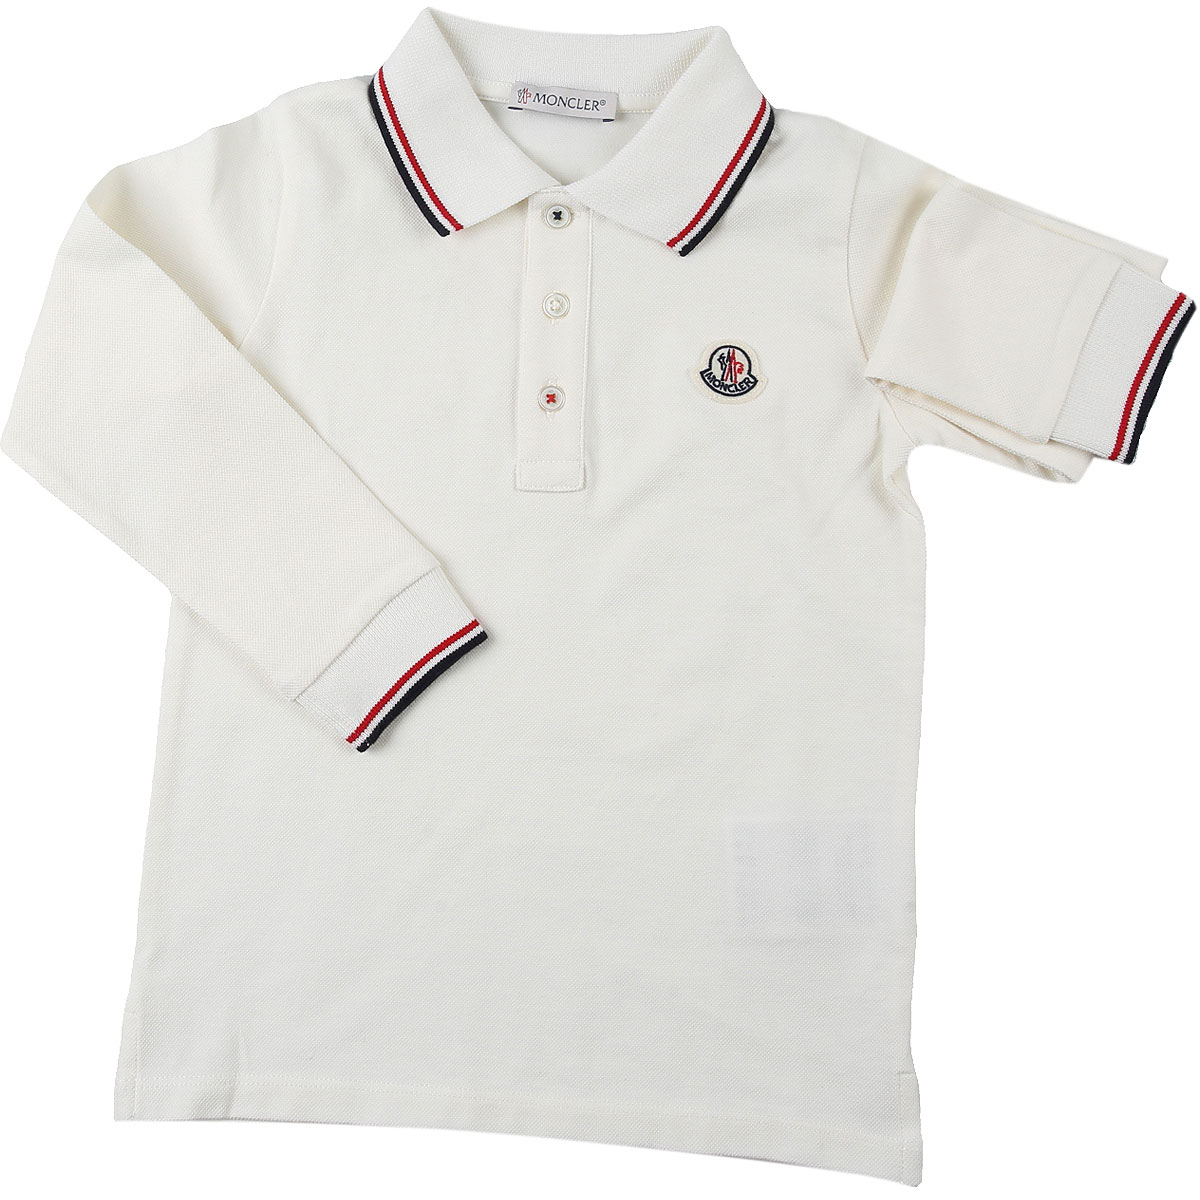 Moncler Baby Polo Shirt for Boys On Sale, White, Cotton, 2019, 18M 24M 3Y 9M